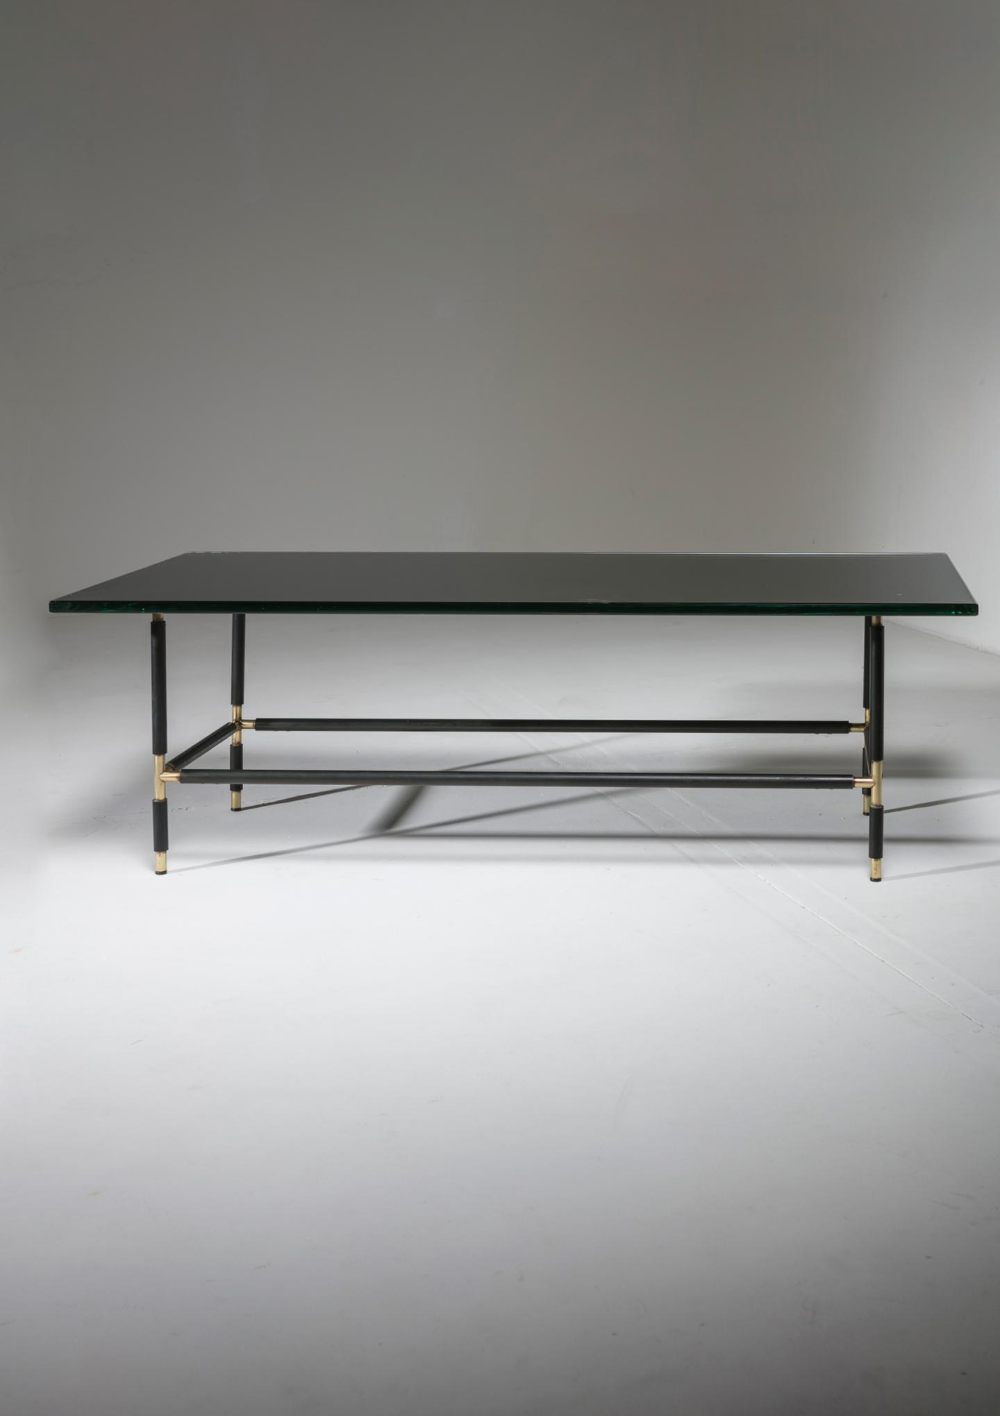 Remarkable Coffee Table Model 1736 By Fontana Arte Gray Mirrored Thick Glass Top Is Supported By A Thin Metal Frame With Brass Conne Coffee Table Table Fontana [ 1416 x 1000 Pixel ]